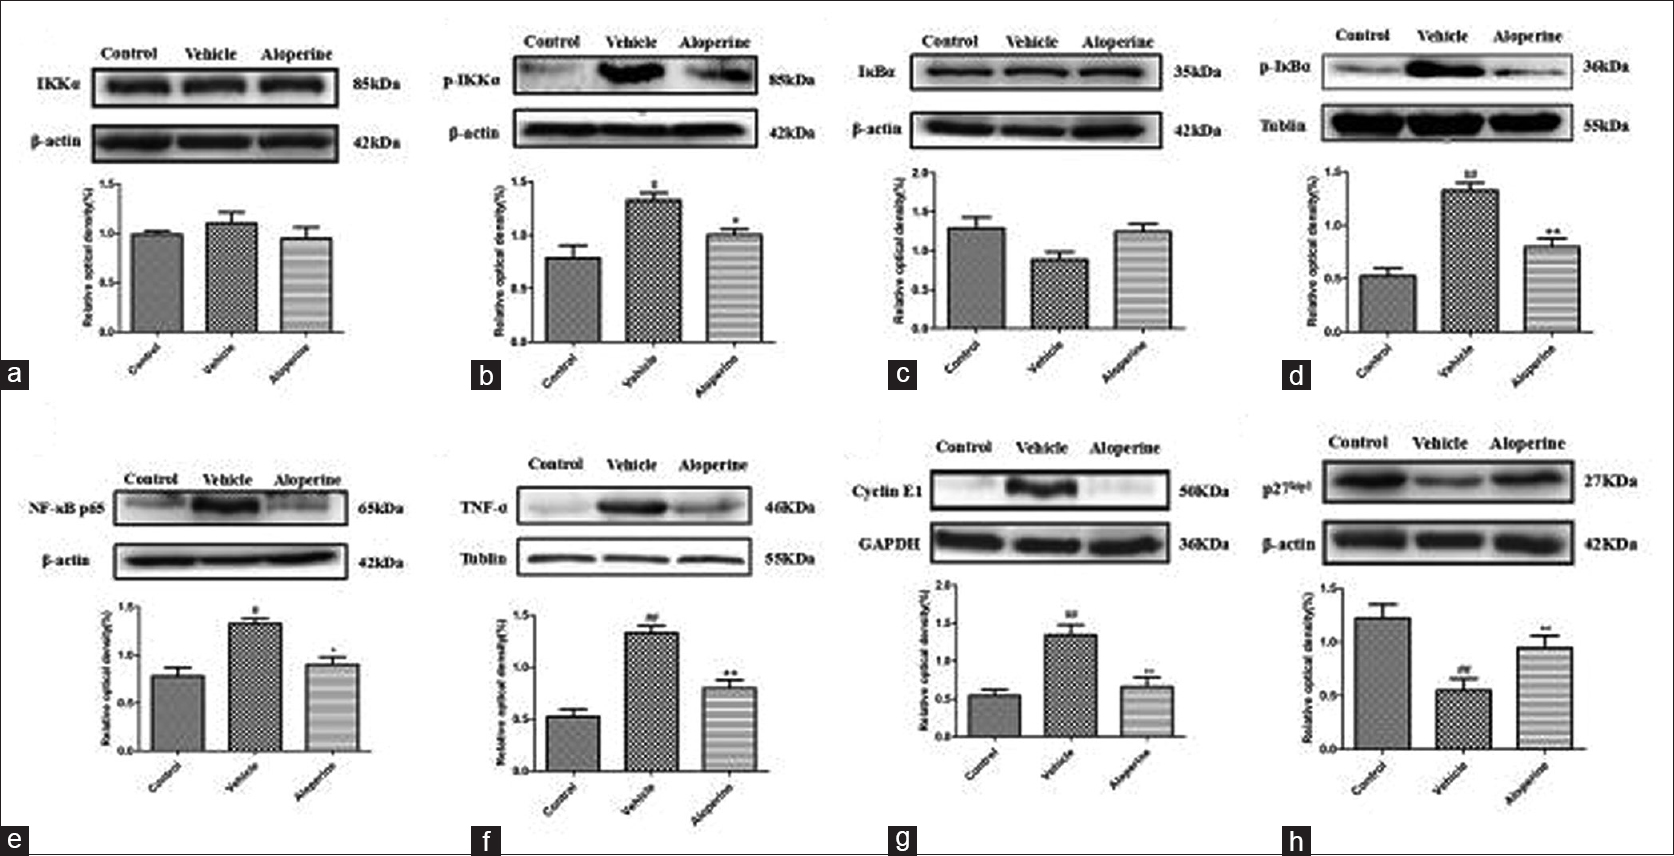 Figure 4: Effects of Aloperine on the inactivation of signaling pathways in PDGF-BB stimulated HPASMCs. HPASMCs were treated with Aloperine (0.5 mM) for 24 h after treatment with 20 ng/ml PDGF-BB. The protein expression levels of (a) IKKα, (b) p-IKKα, (c) IκBα, (d) p-IκBα, (e) NF-κB p65, (f) TNF-α, (g) Cyclin E1 and (h) p27<sup>kip1</sup> were determined by Western blot analysis. One representative image out of three independently performed experiments is shown. Values are expressed as the mean ± standard deviation. <sup>##</sup><i>P</i> < 0.01, <sup>#</sup><i>P</i> < 0.05 versus the control group; **<i>P</i> < 0.01, *<i>P</i> < 0.05 versus the PDGF-BB treated cells. Vehicle; the PGDF-BB group: Platelet-derived growth factor-BB; HPASMCs: Human pulmonary artery smooth muscle cells